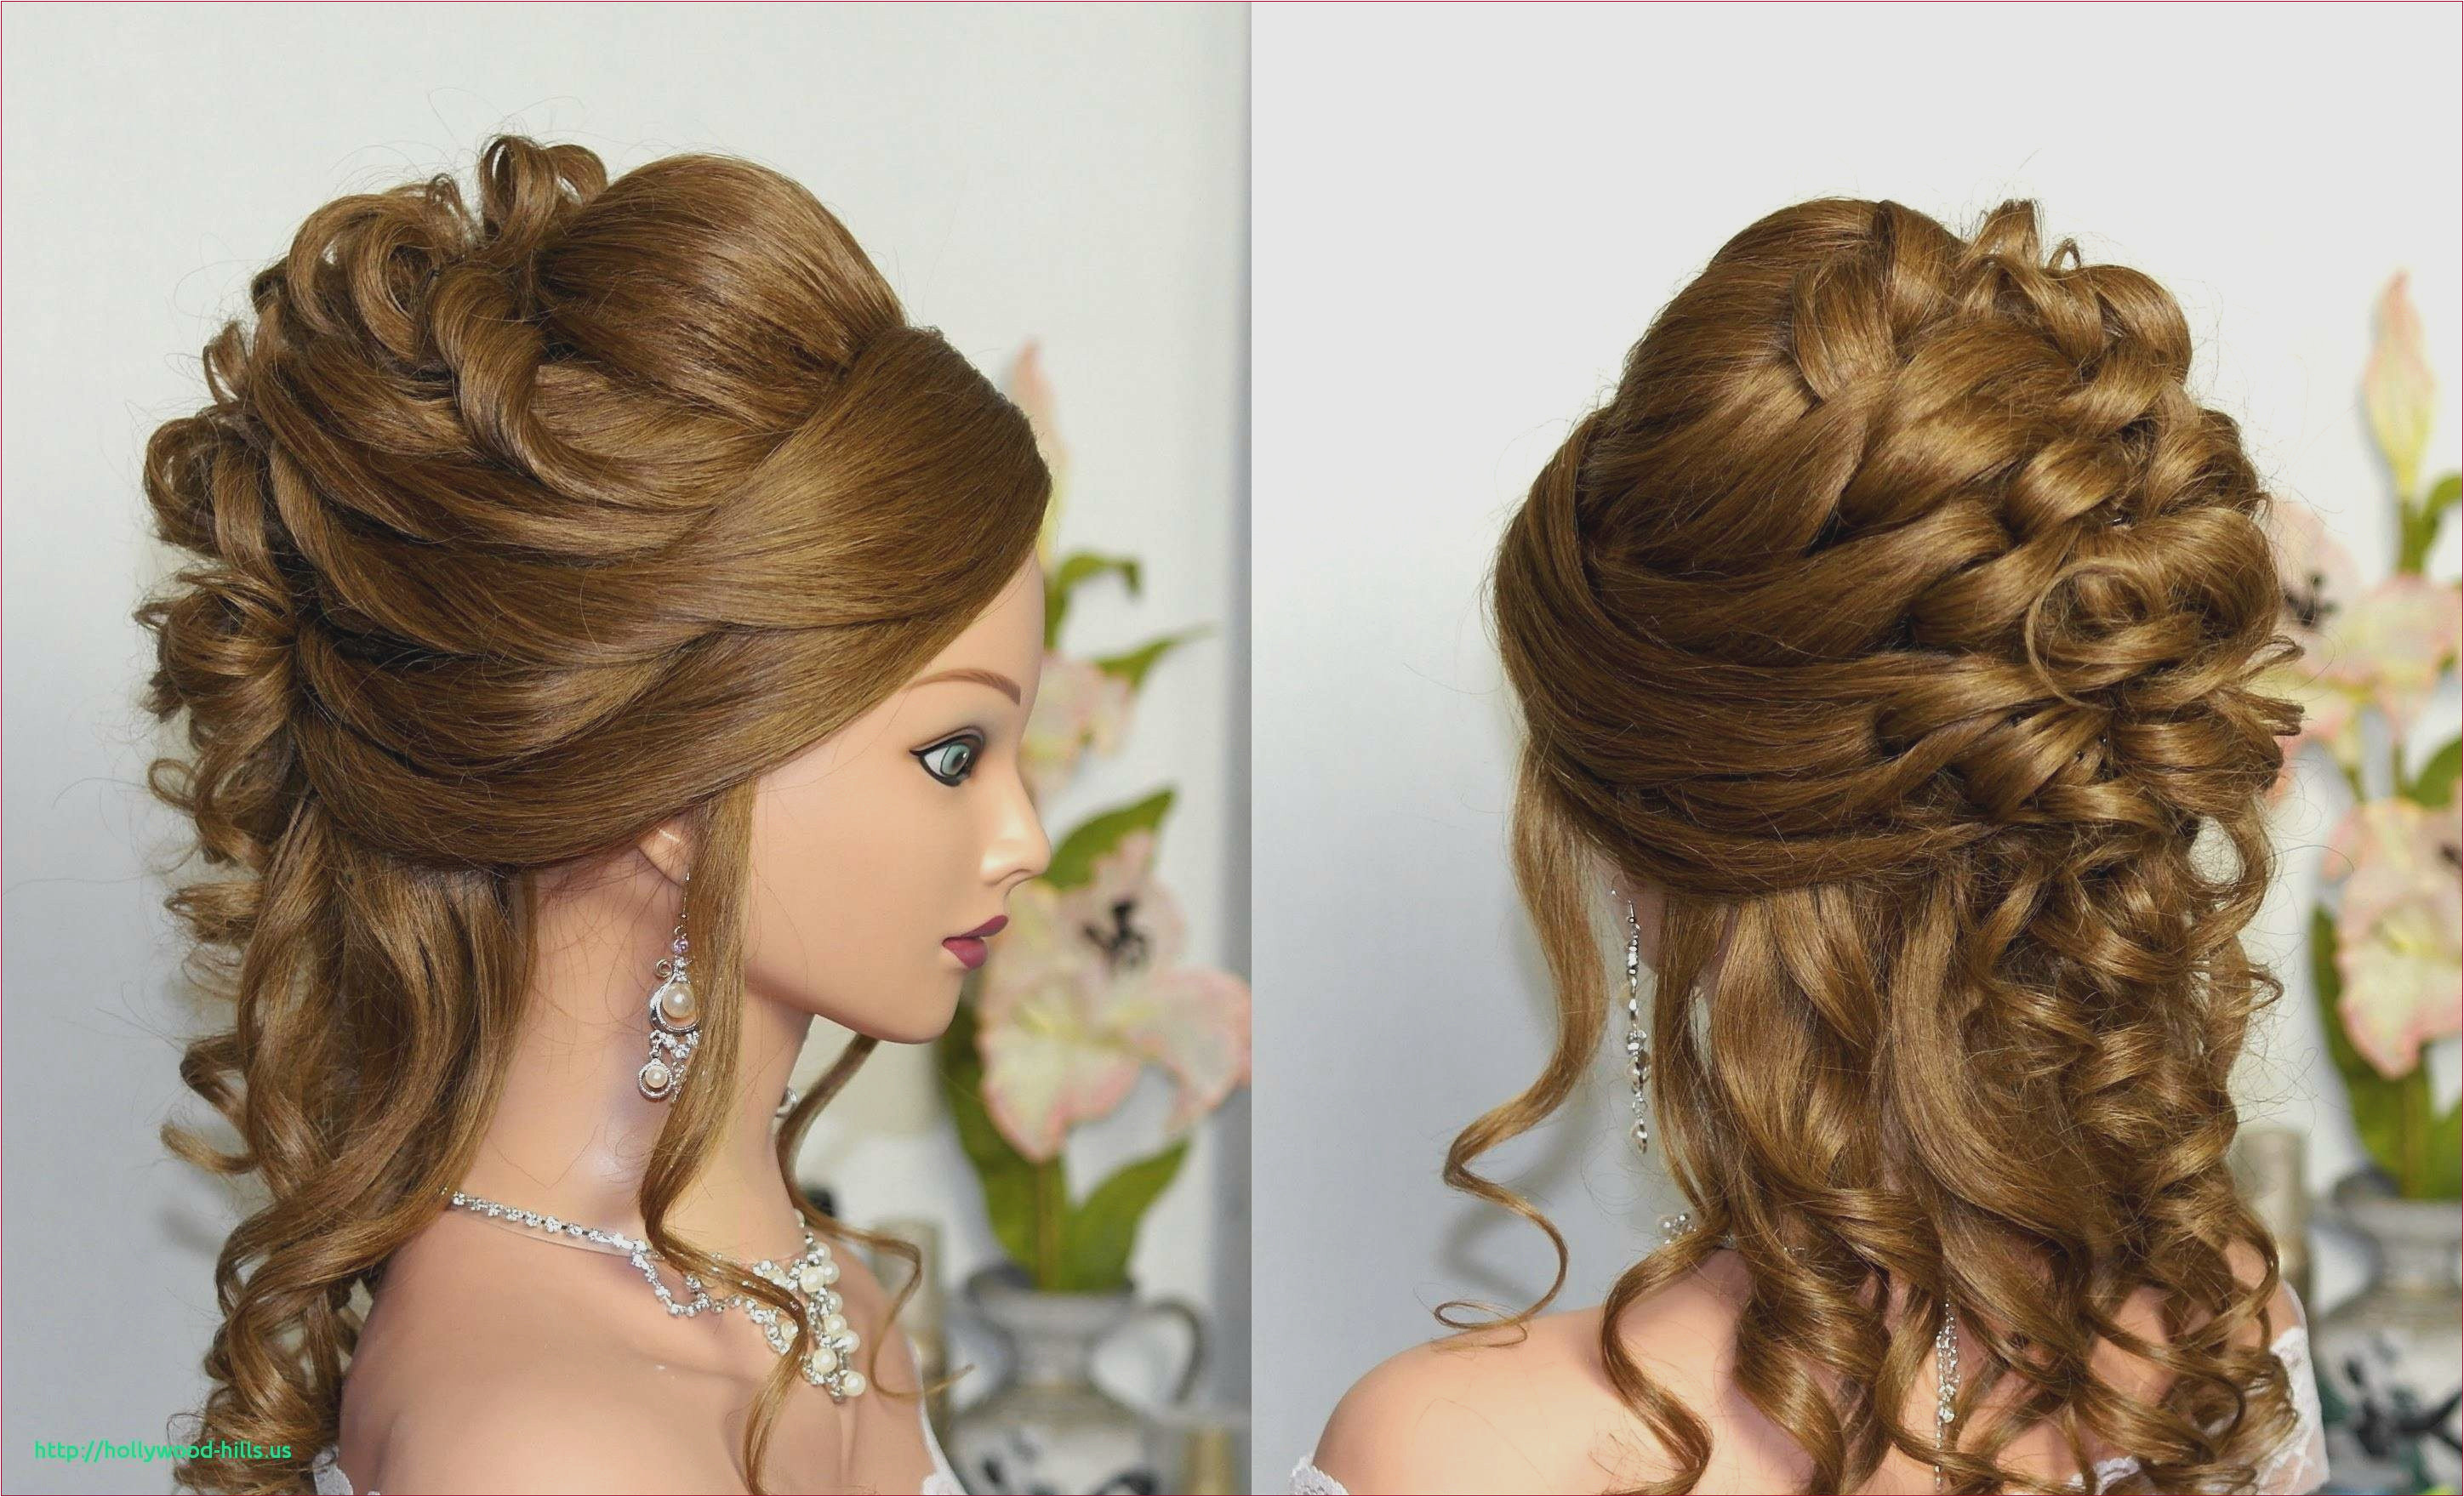 Wedding Hairstyles Down Curly Simple Curly Hairstyles Wedding Hairstyles Half Up Half Down Curly